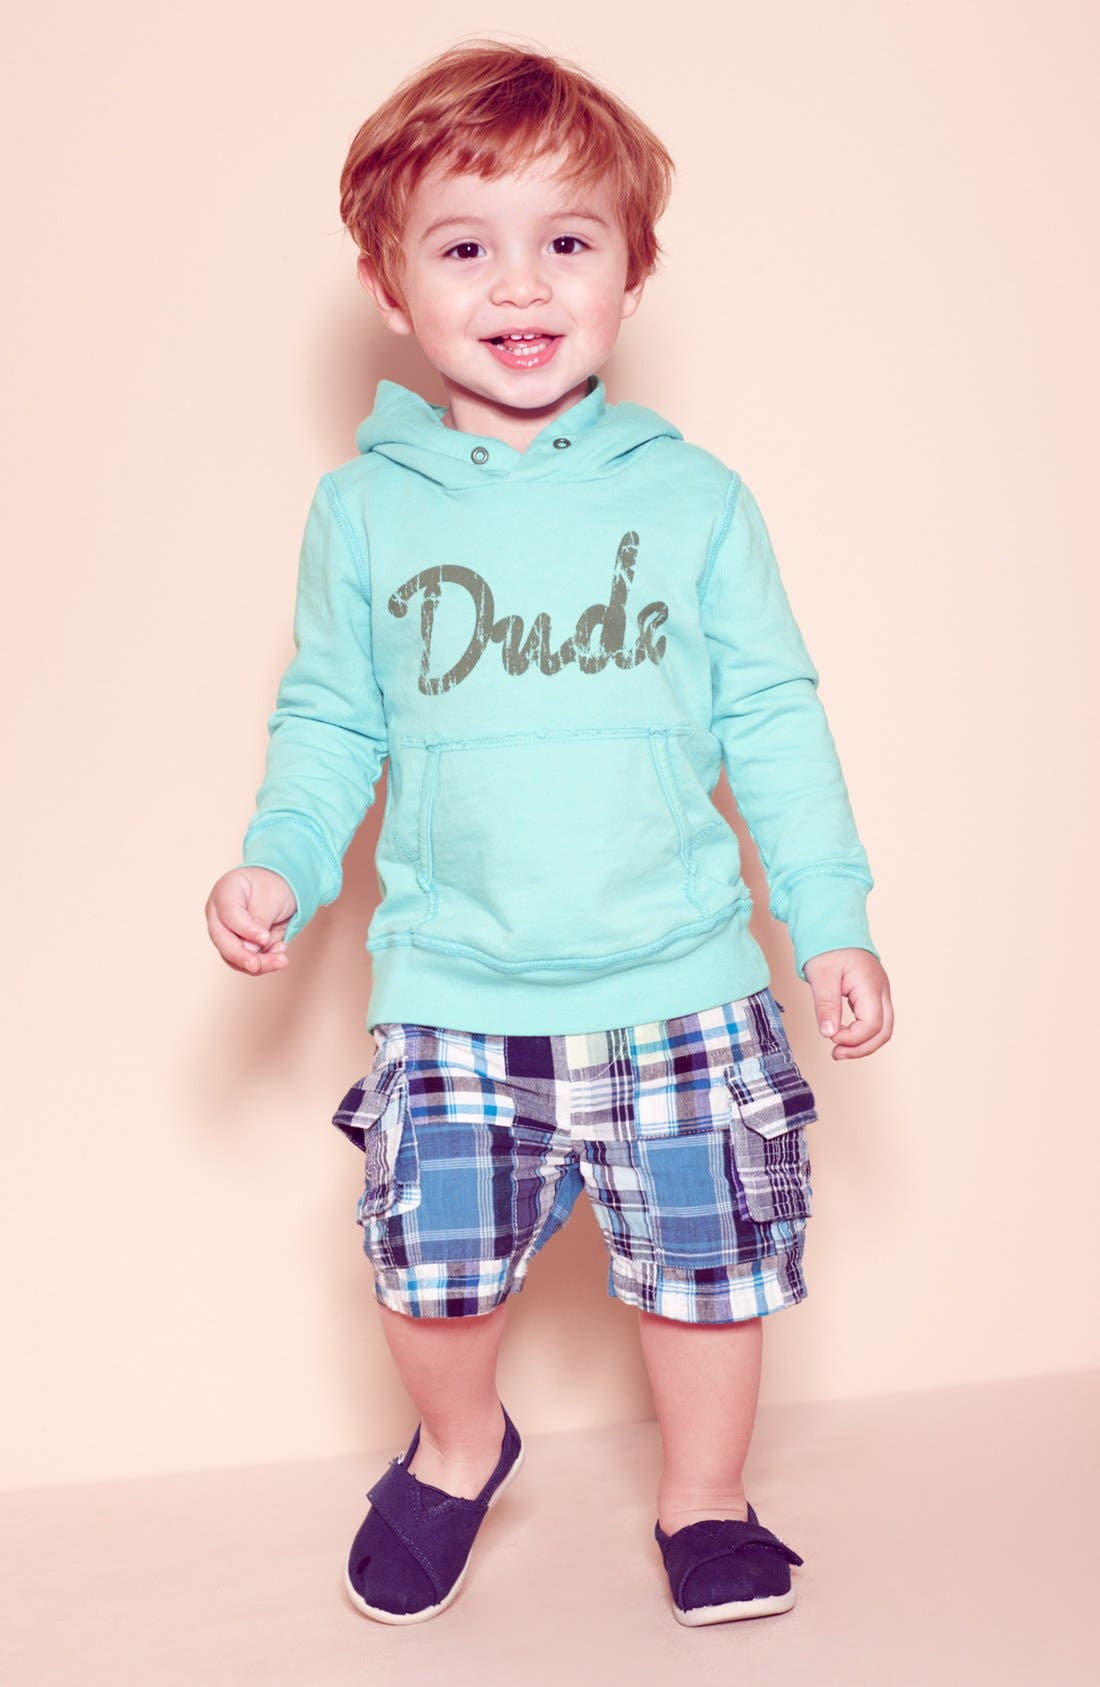 Main Image - Peek Hoodie & Plaid Shorts, Babiators Sunglasses & TOMS Slip-On (Infant)